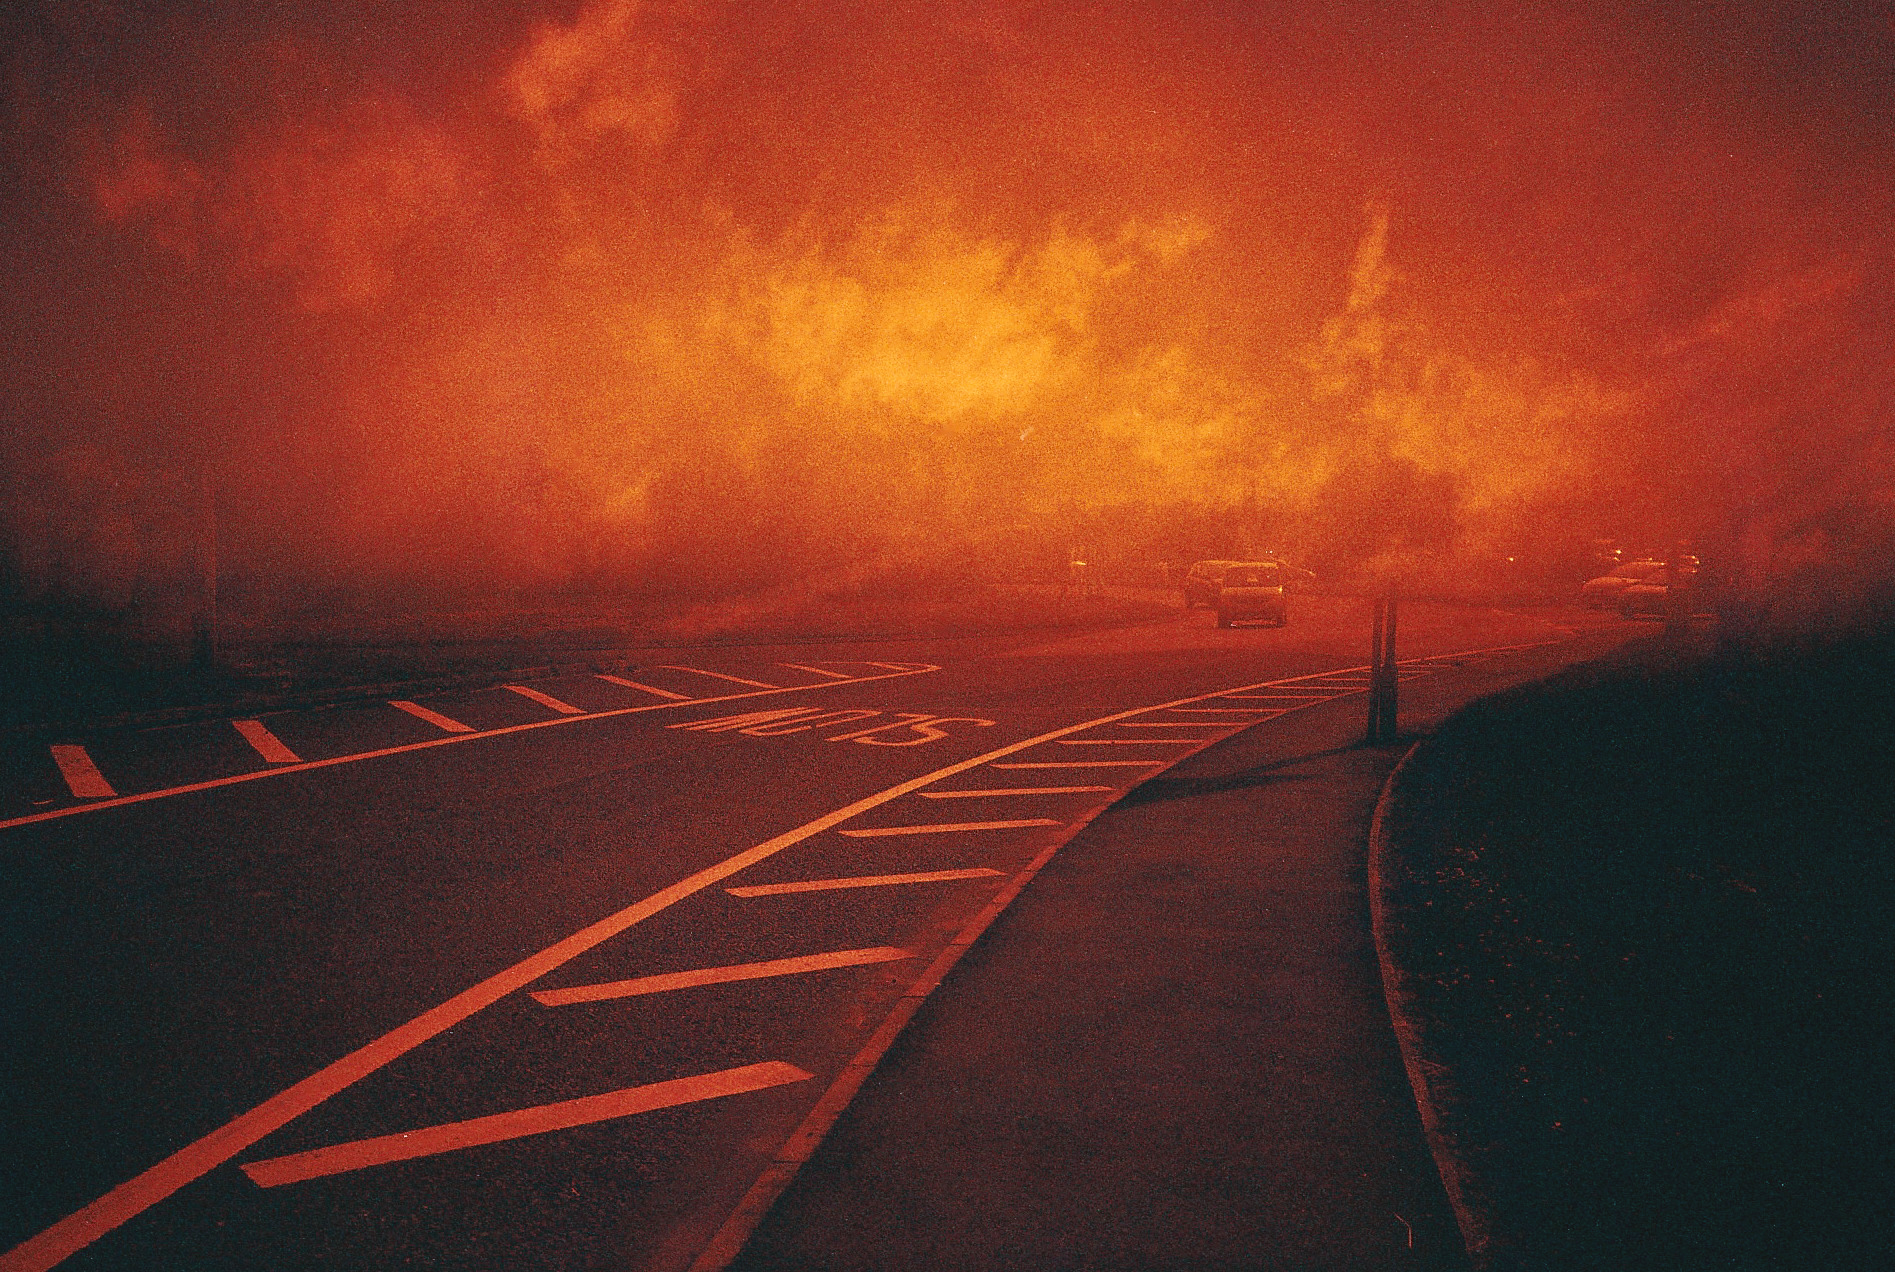 LIGHTLEAKS red skies LIGHT LEAKS  Image of red skies